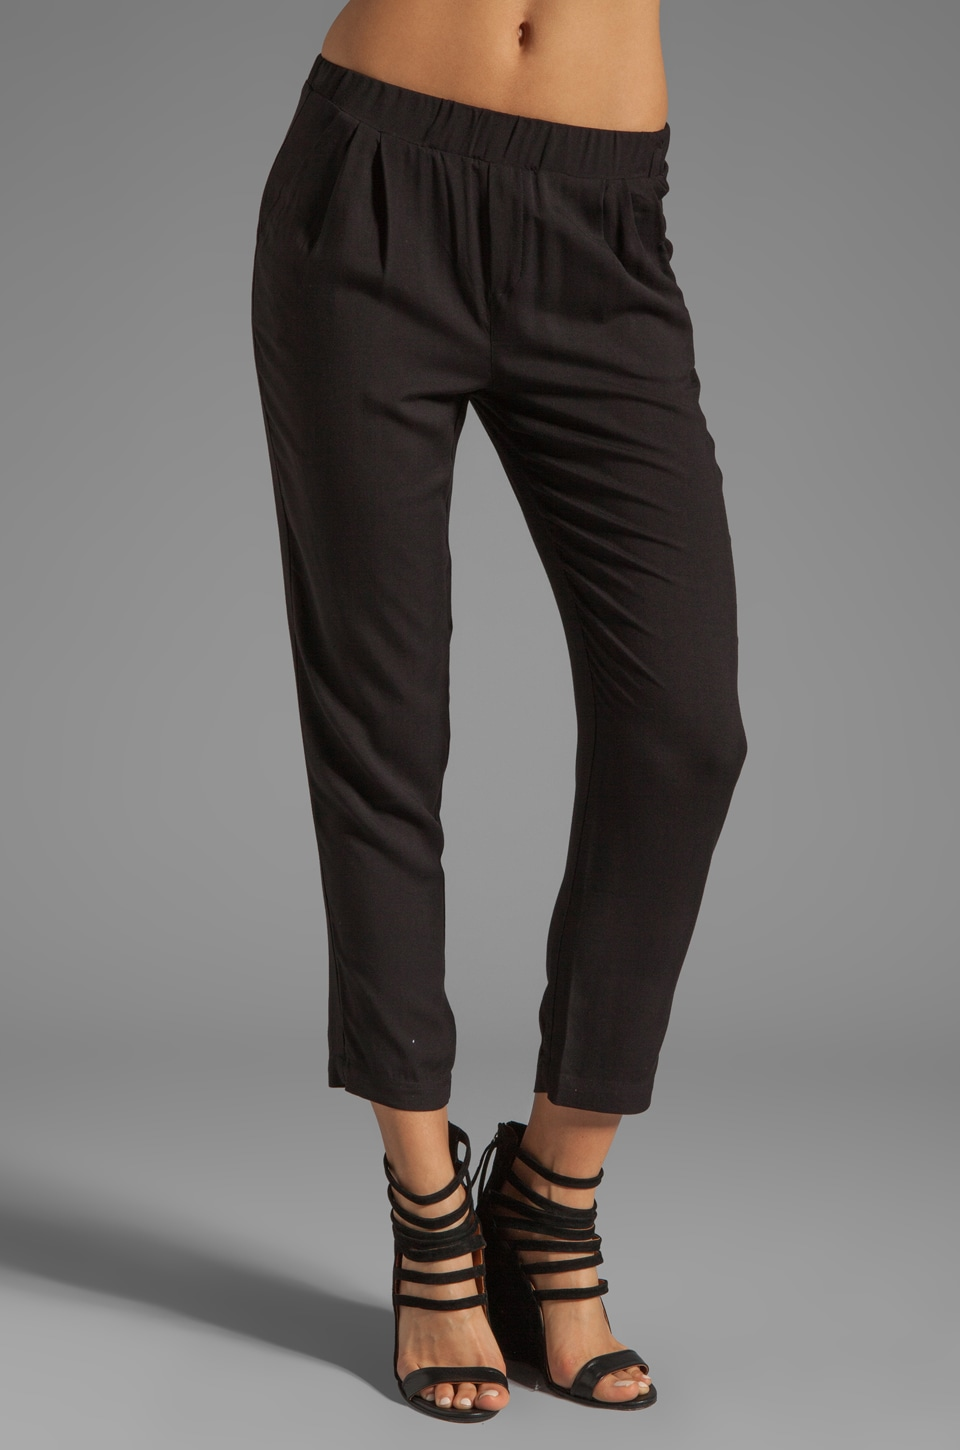 Ella Moss Aiselin Pants in Black